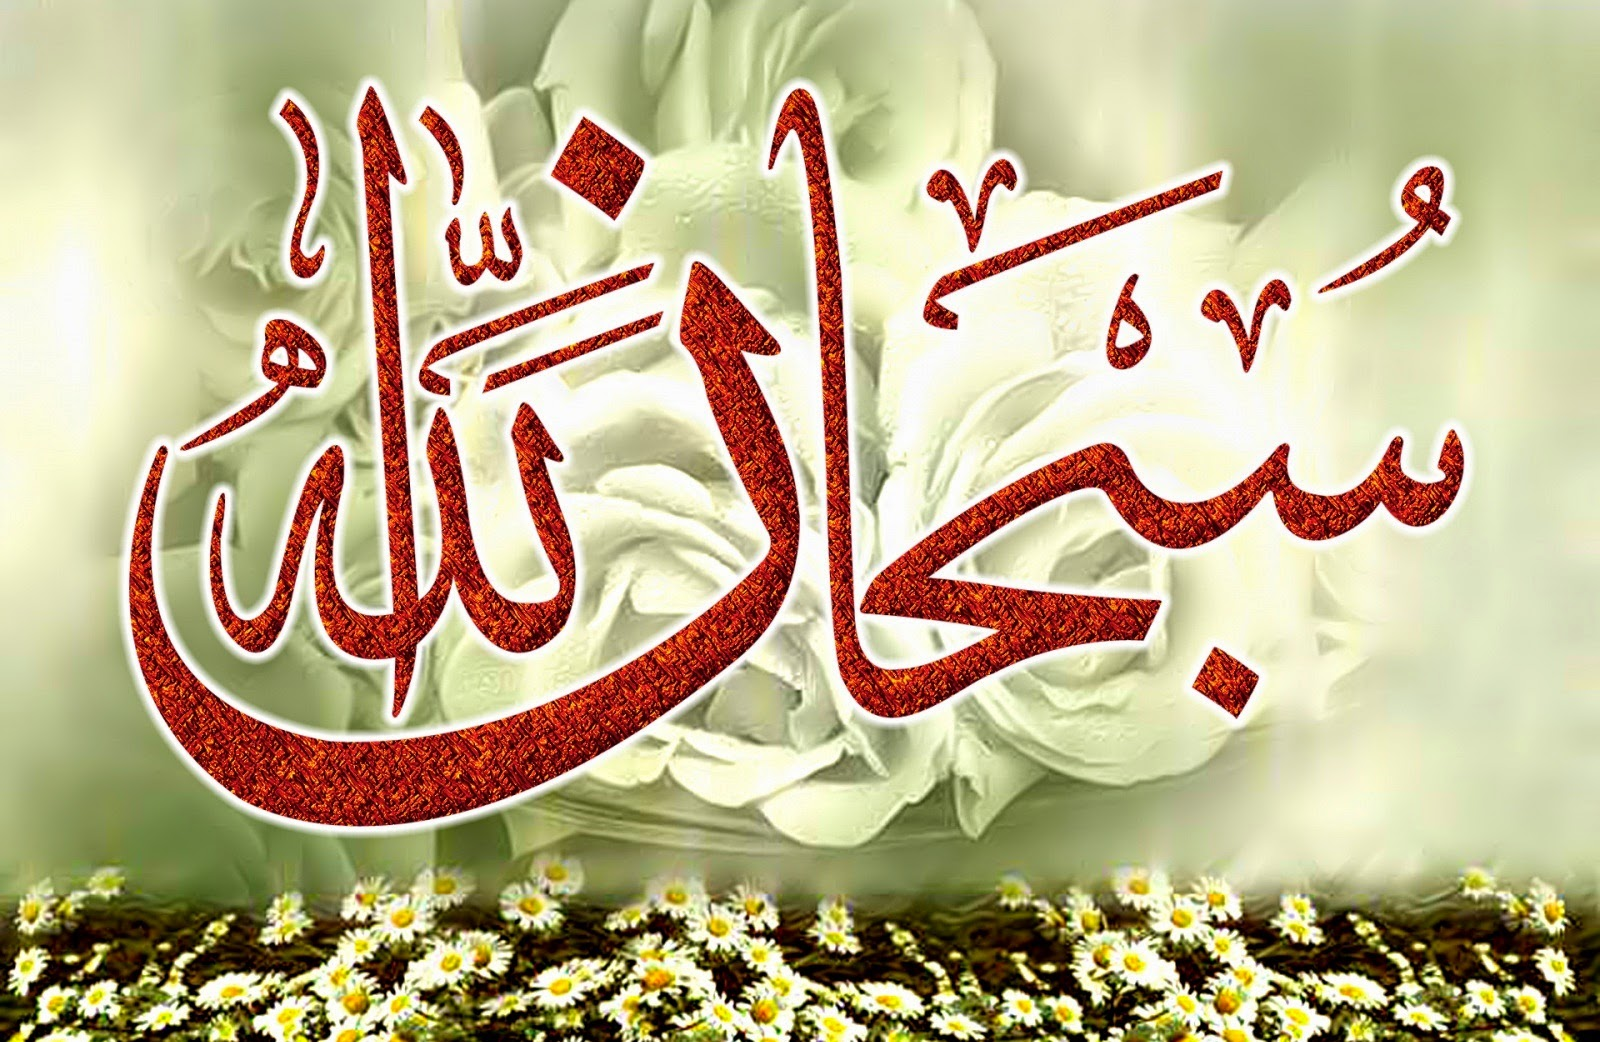 Subhan allah calligraphy wallpapers 2014 islamic Allah calligraphy wallpaper